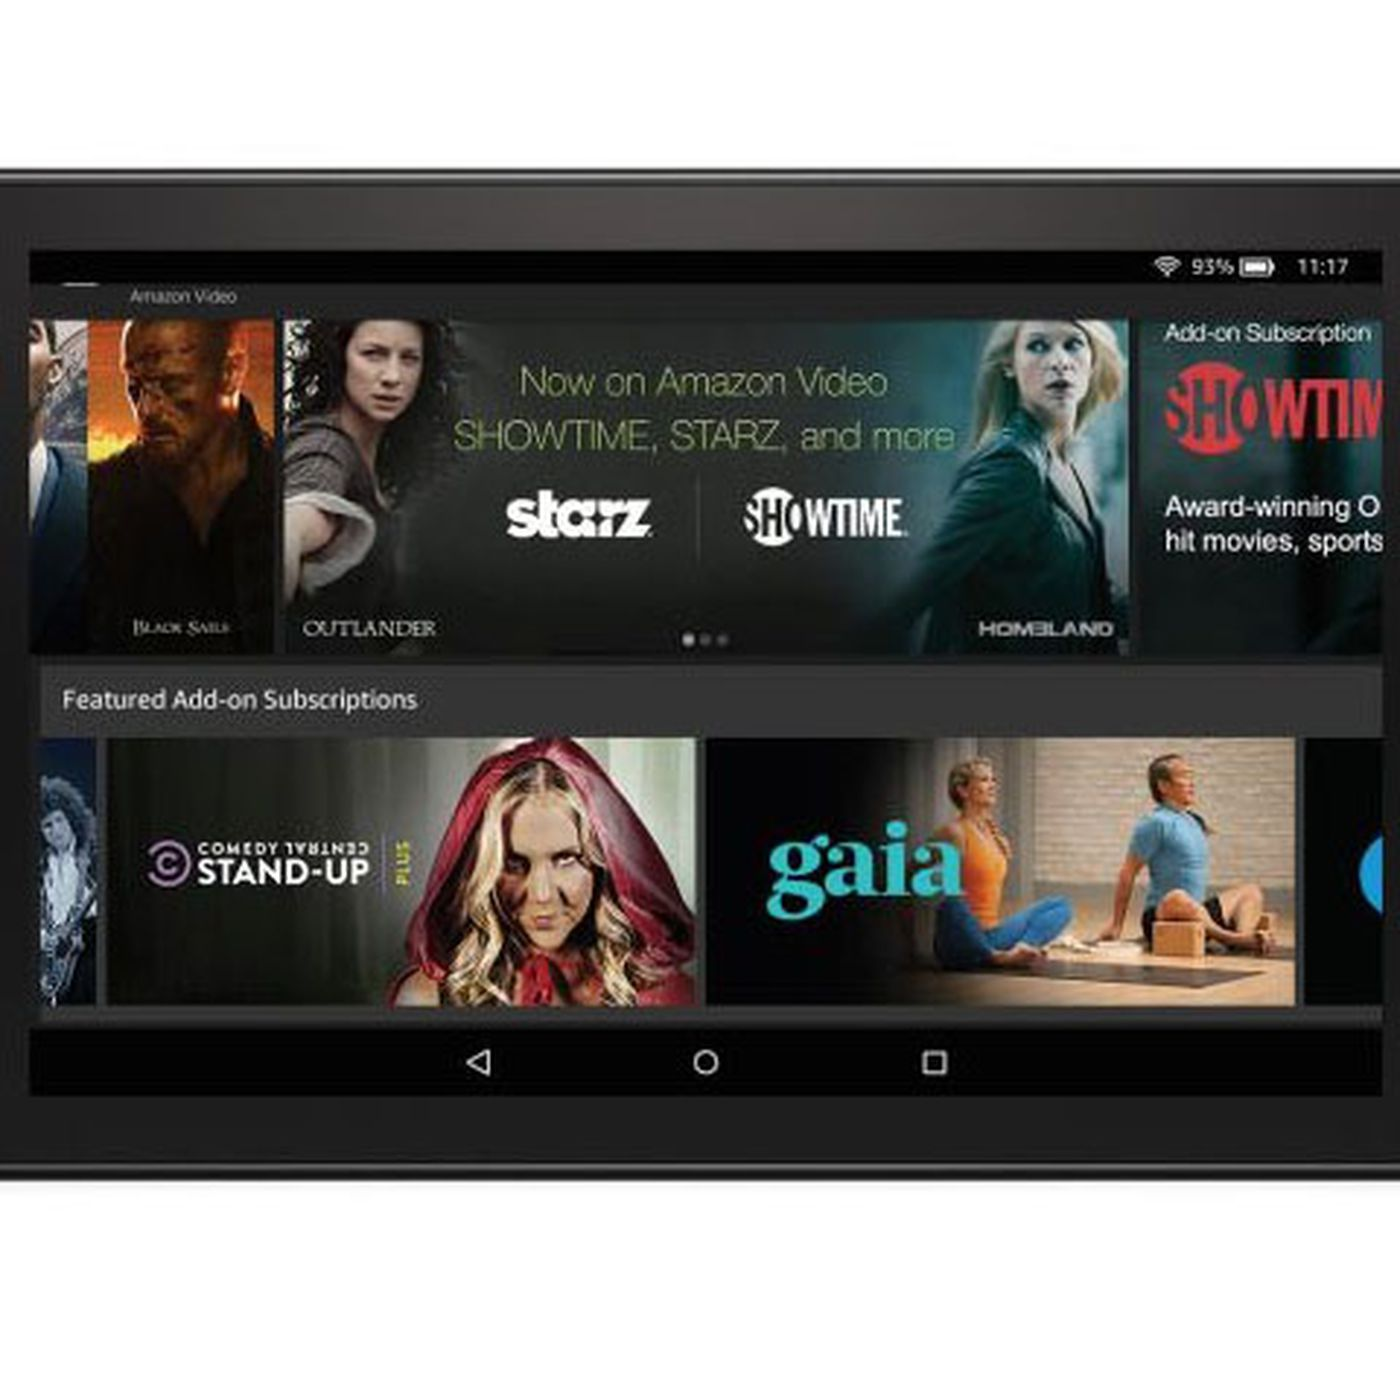 Amazon Starts Building Its Own Bundle by Selling Showtime